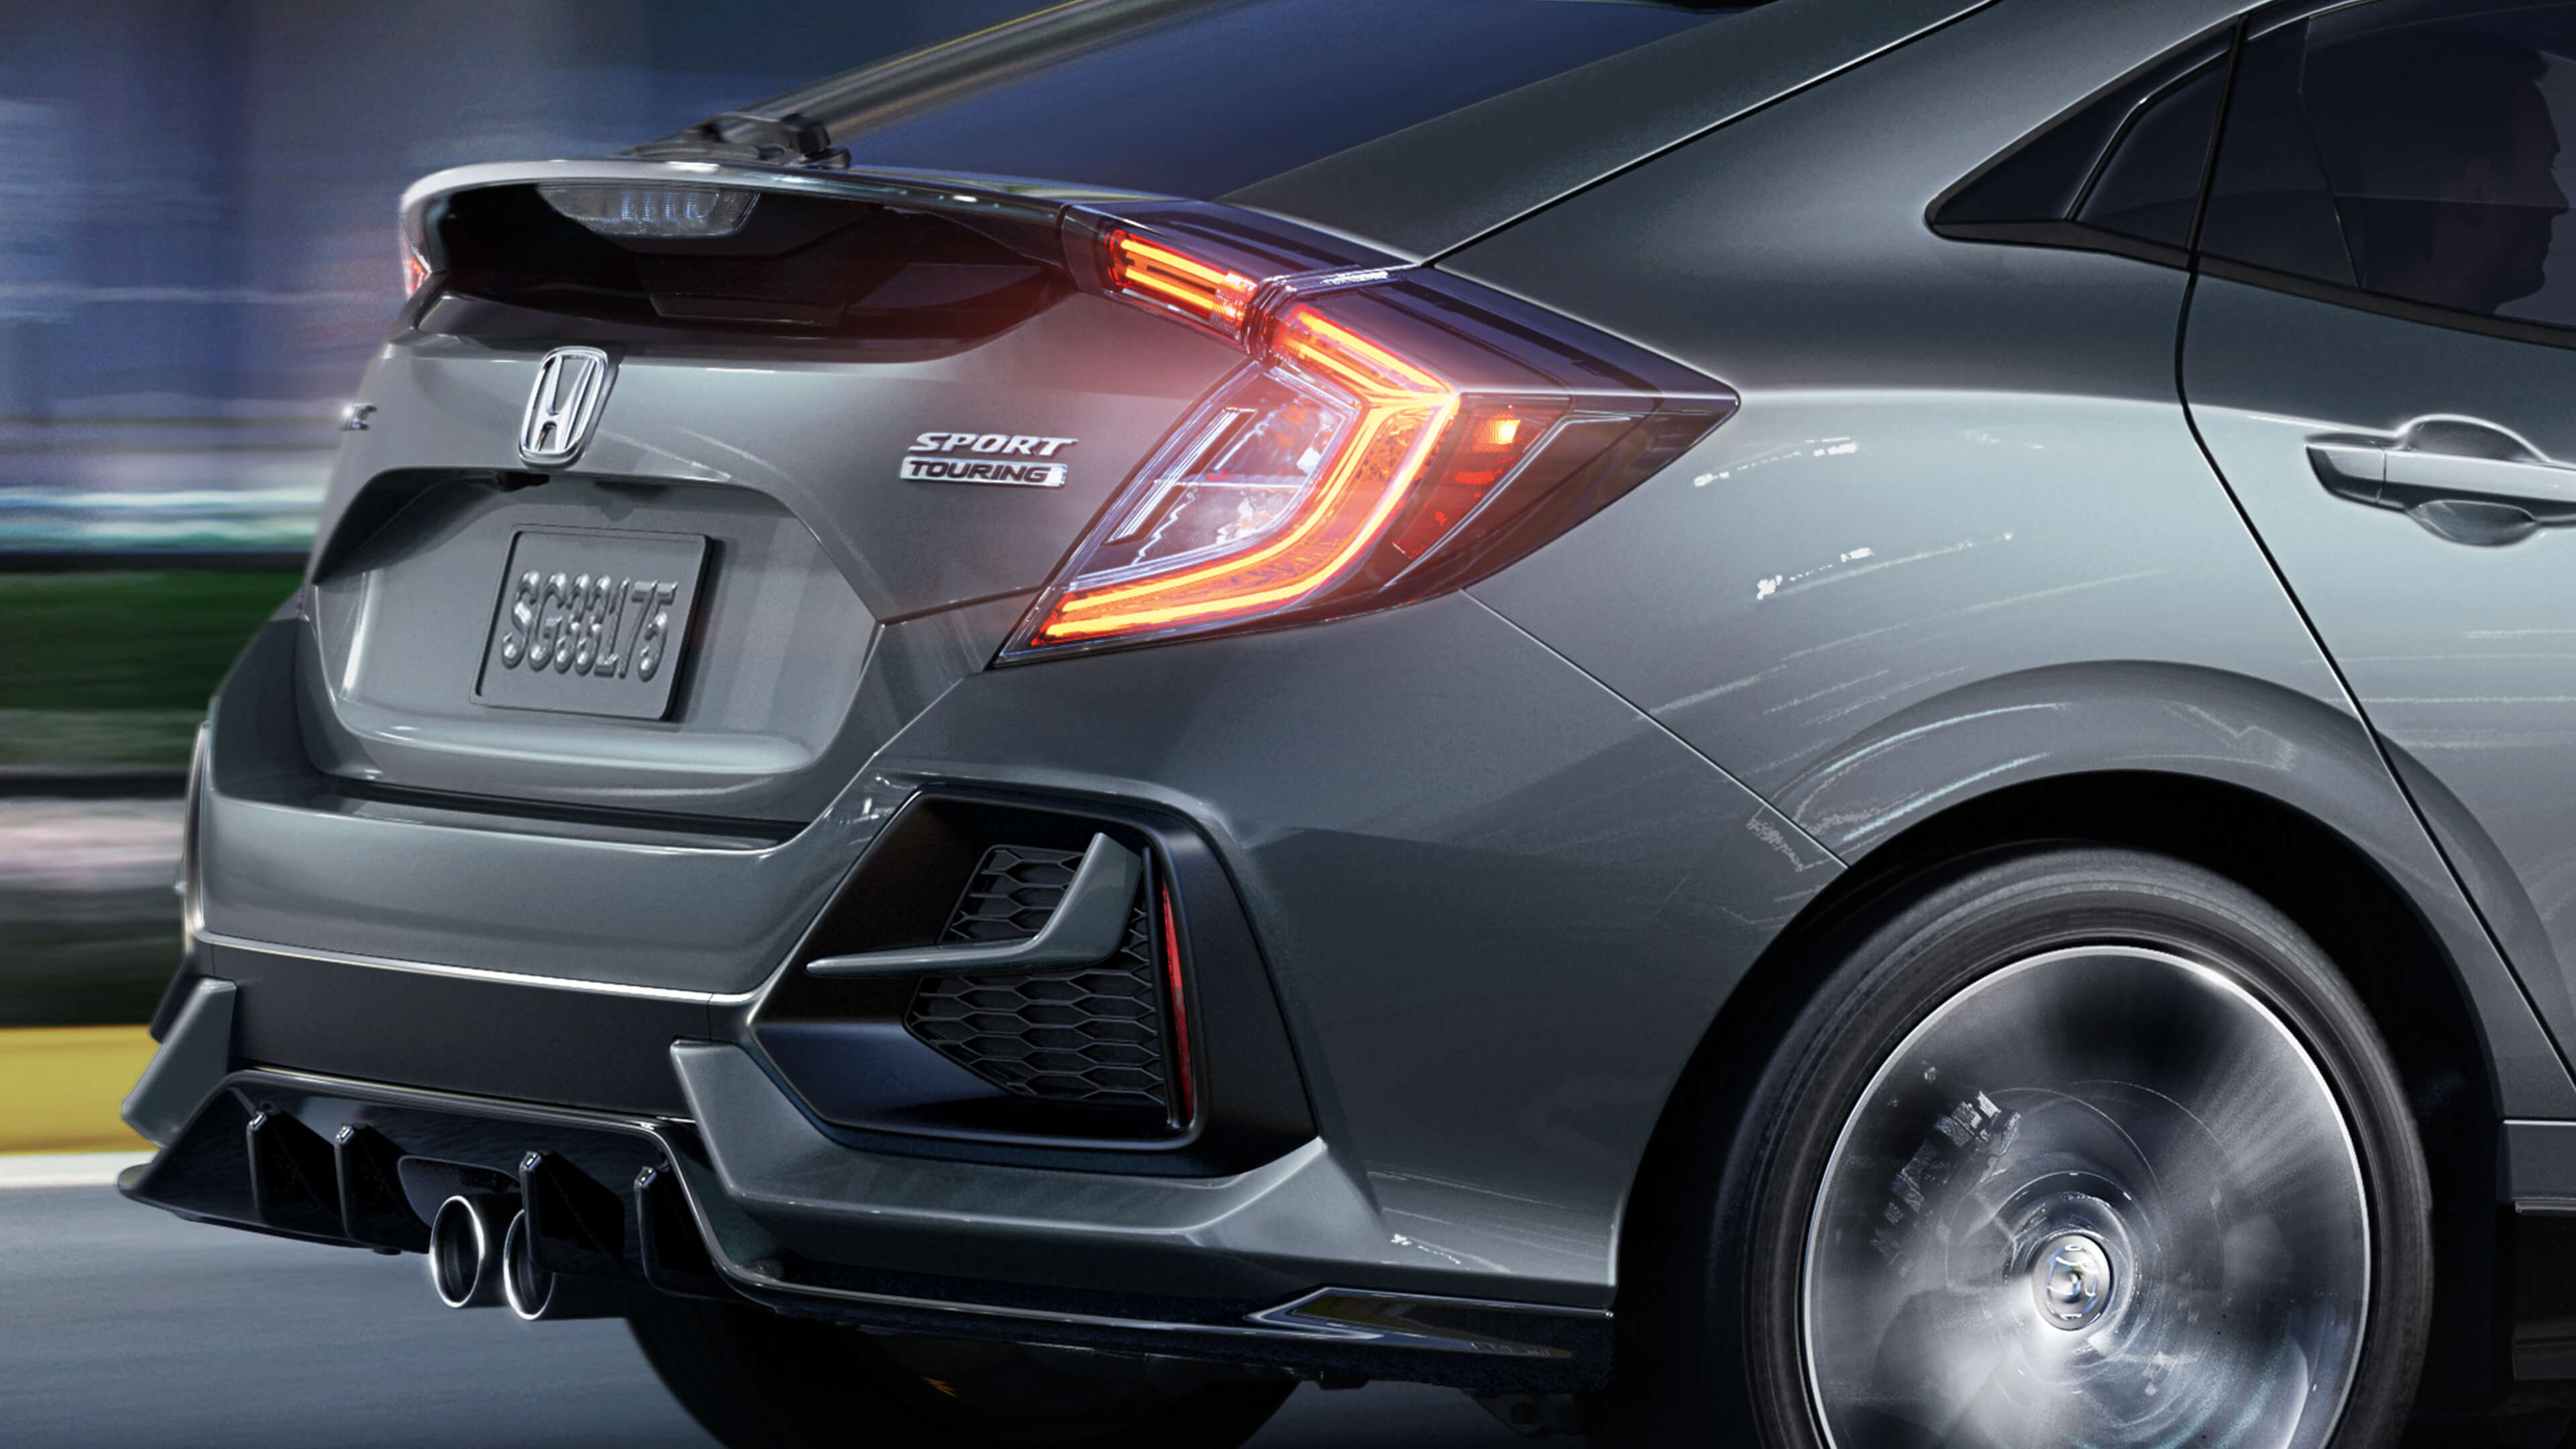 Close-up rear of Honda Civic Hatchback